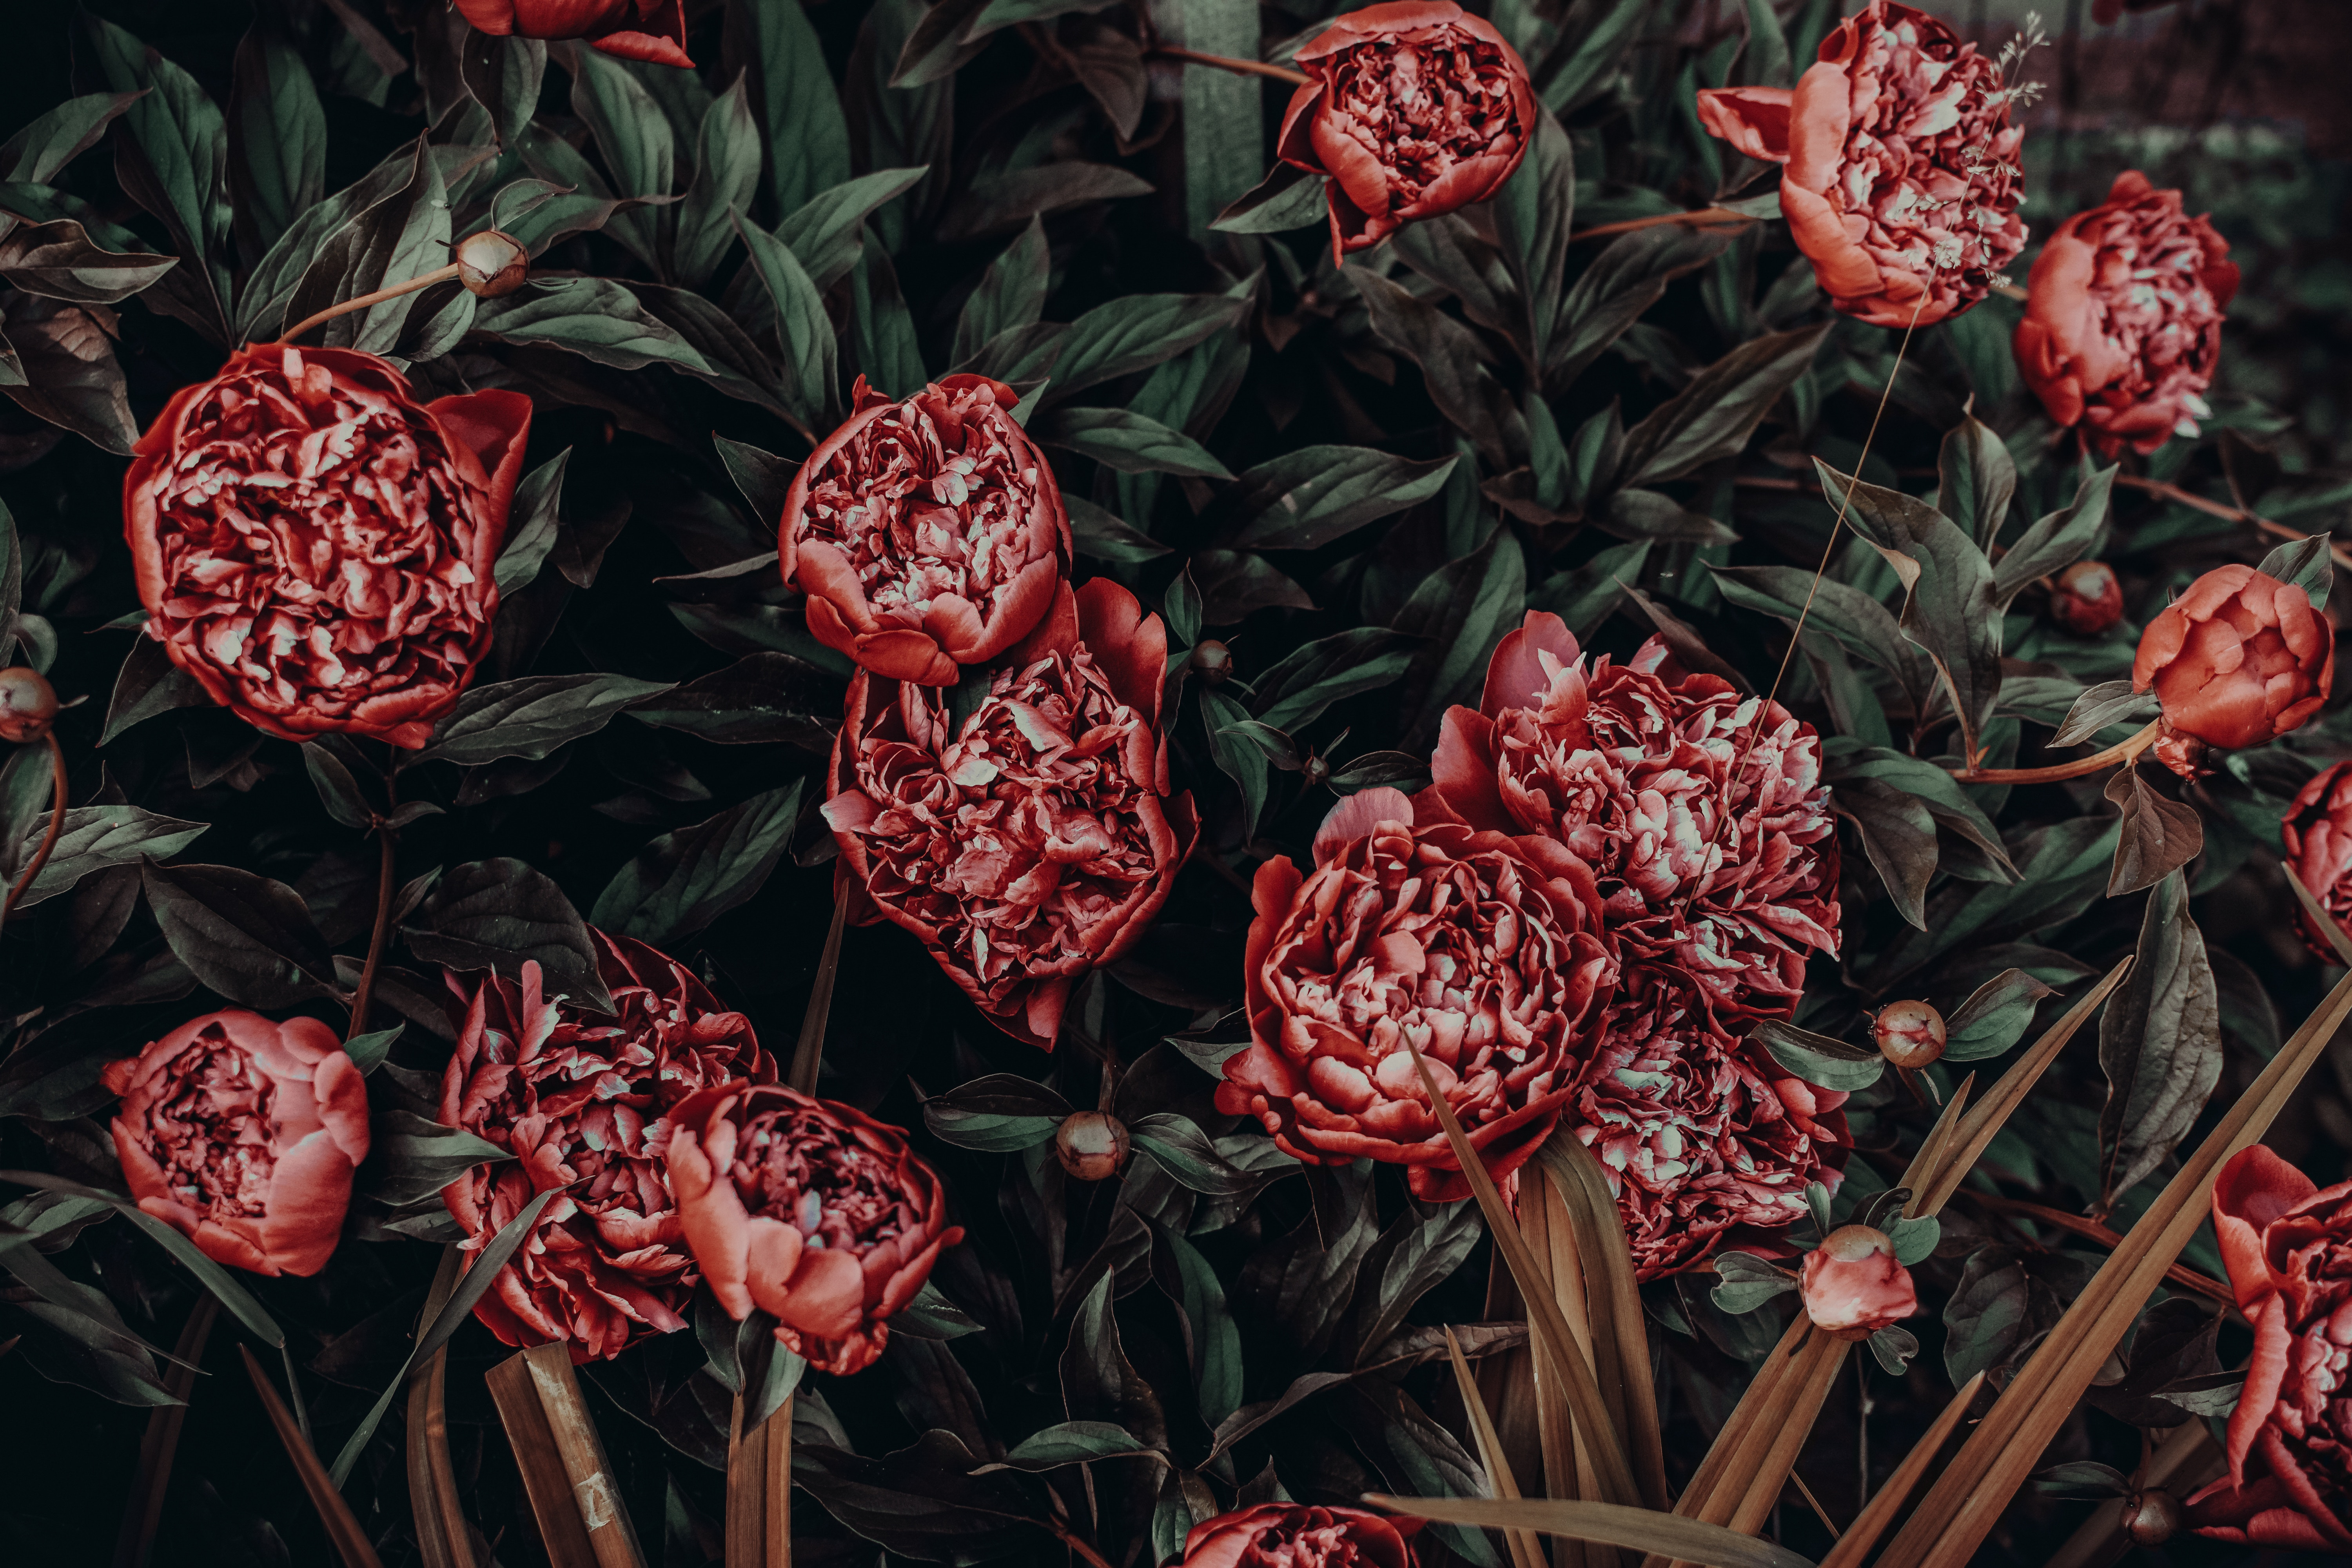 157378 Screensavers and Wallpapers Flower Bed for phone. Download Peonies, Flowers, Flower Bed, Flowerbed, Buds pictures for free